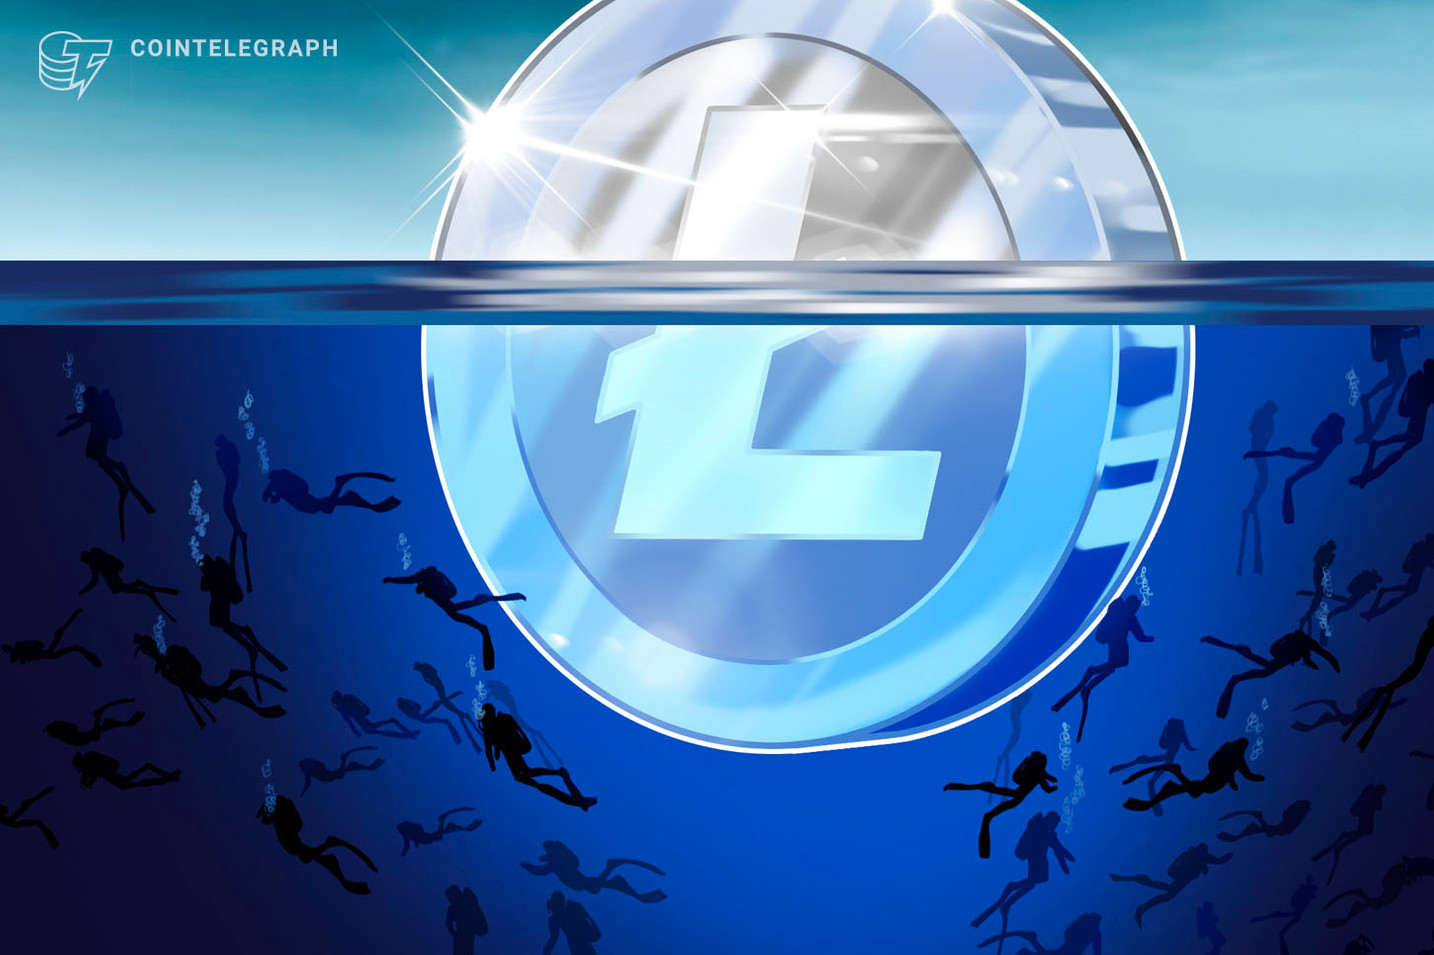 Grayscale's Litecoin-Based Asset Sees Wild Premium Swings